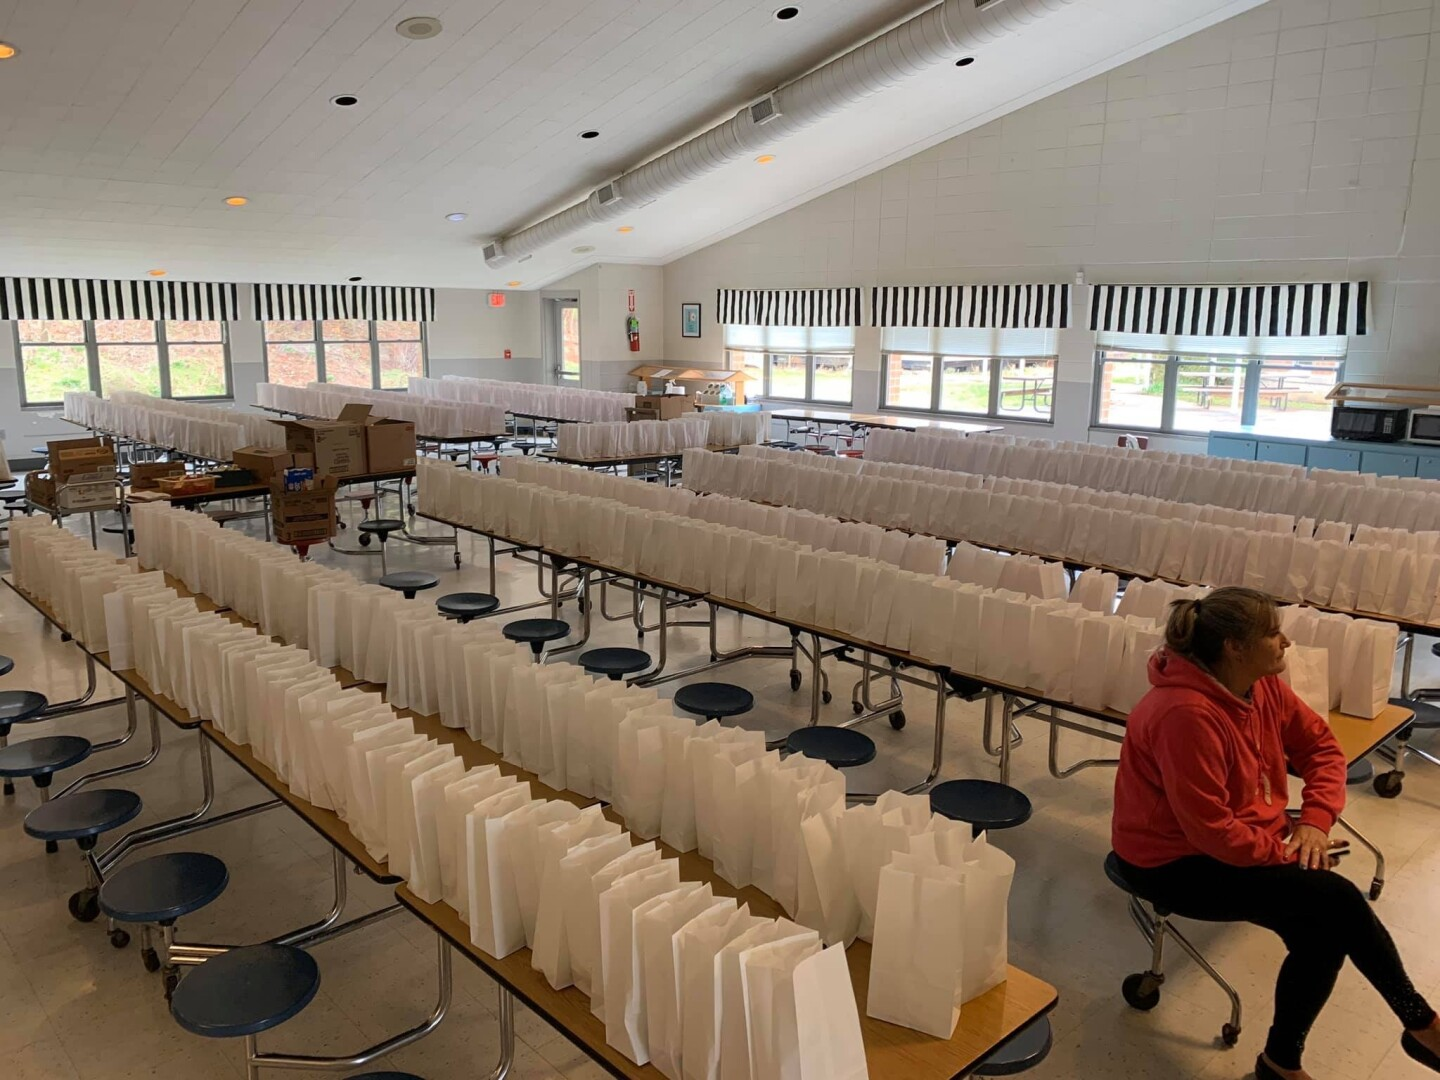 Prepared breakfast and lunch meals waiting to be picked-up by buses for home deliveries in Swain County, North Carolina | Courtesy of Christine Tran